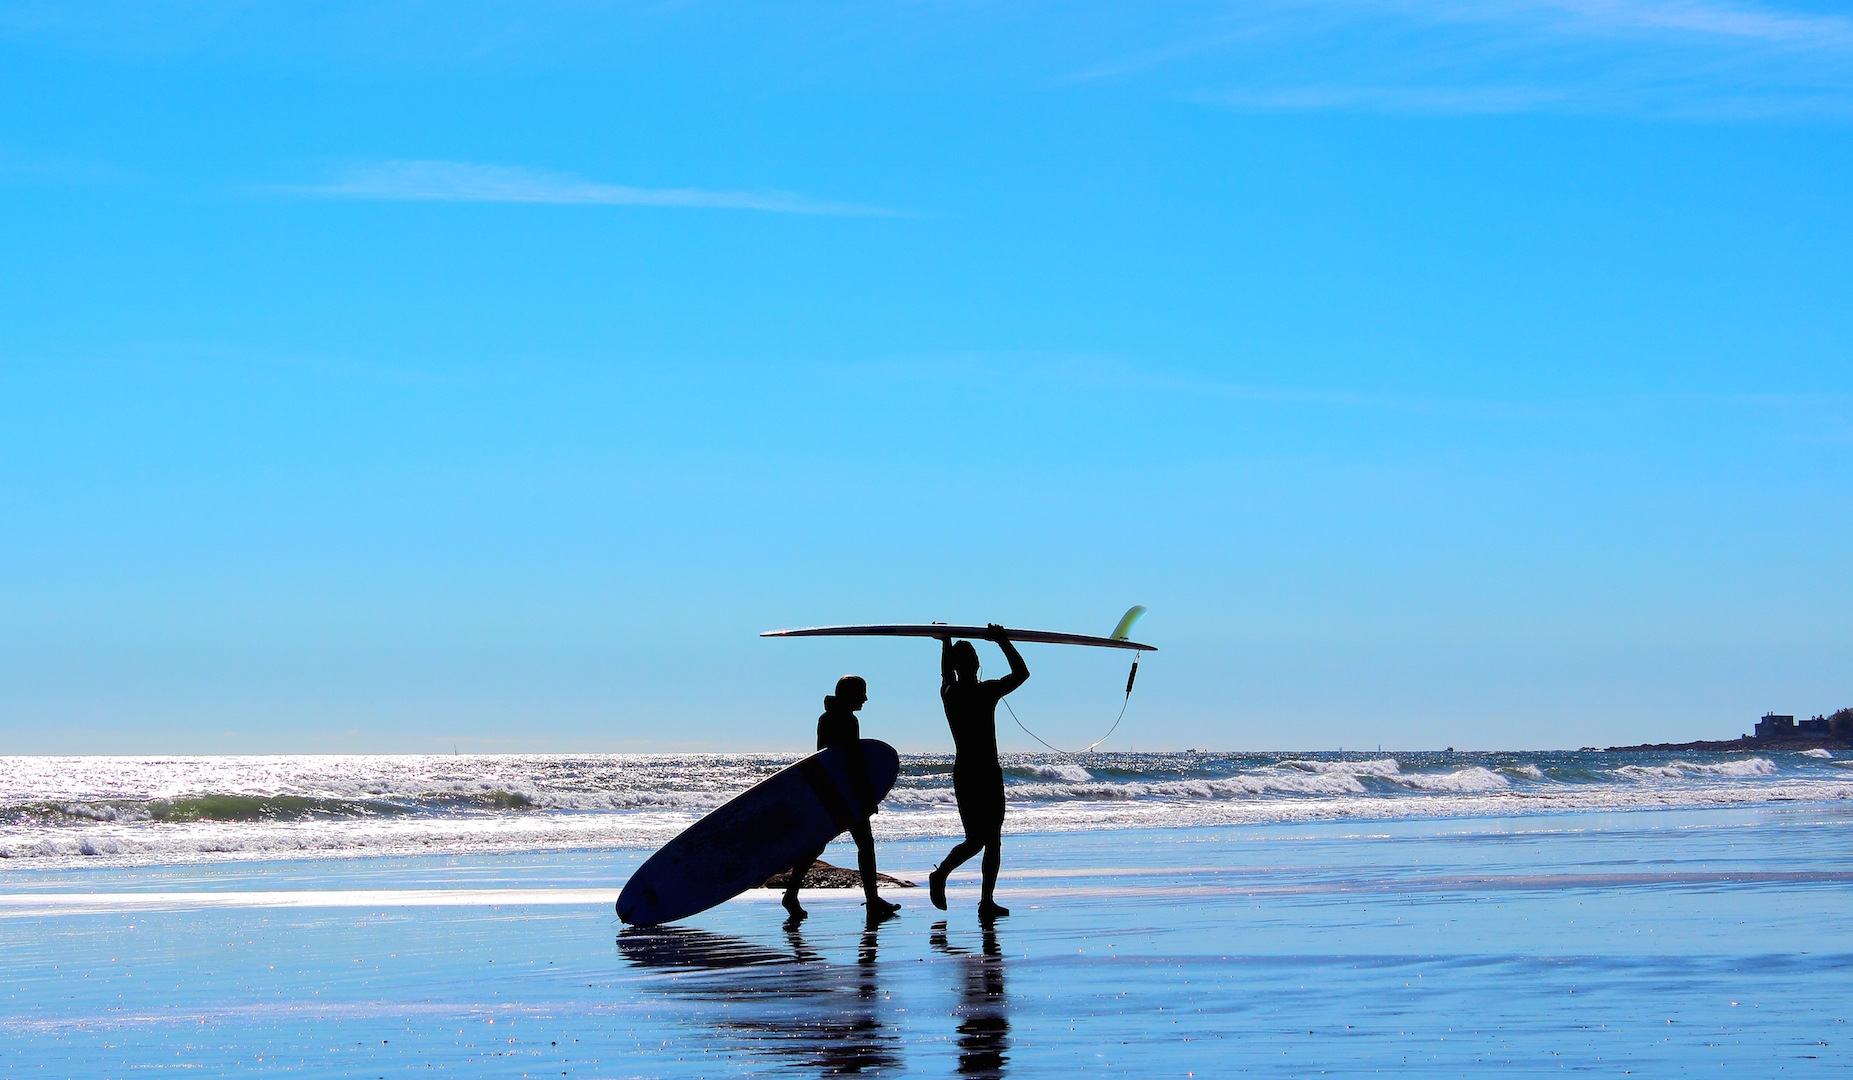 man-and-womans-silhouette-on-blue-background-beach-with-surf-boards-getting-ready-to-go-surfing_t20_9JVrZY